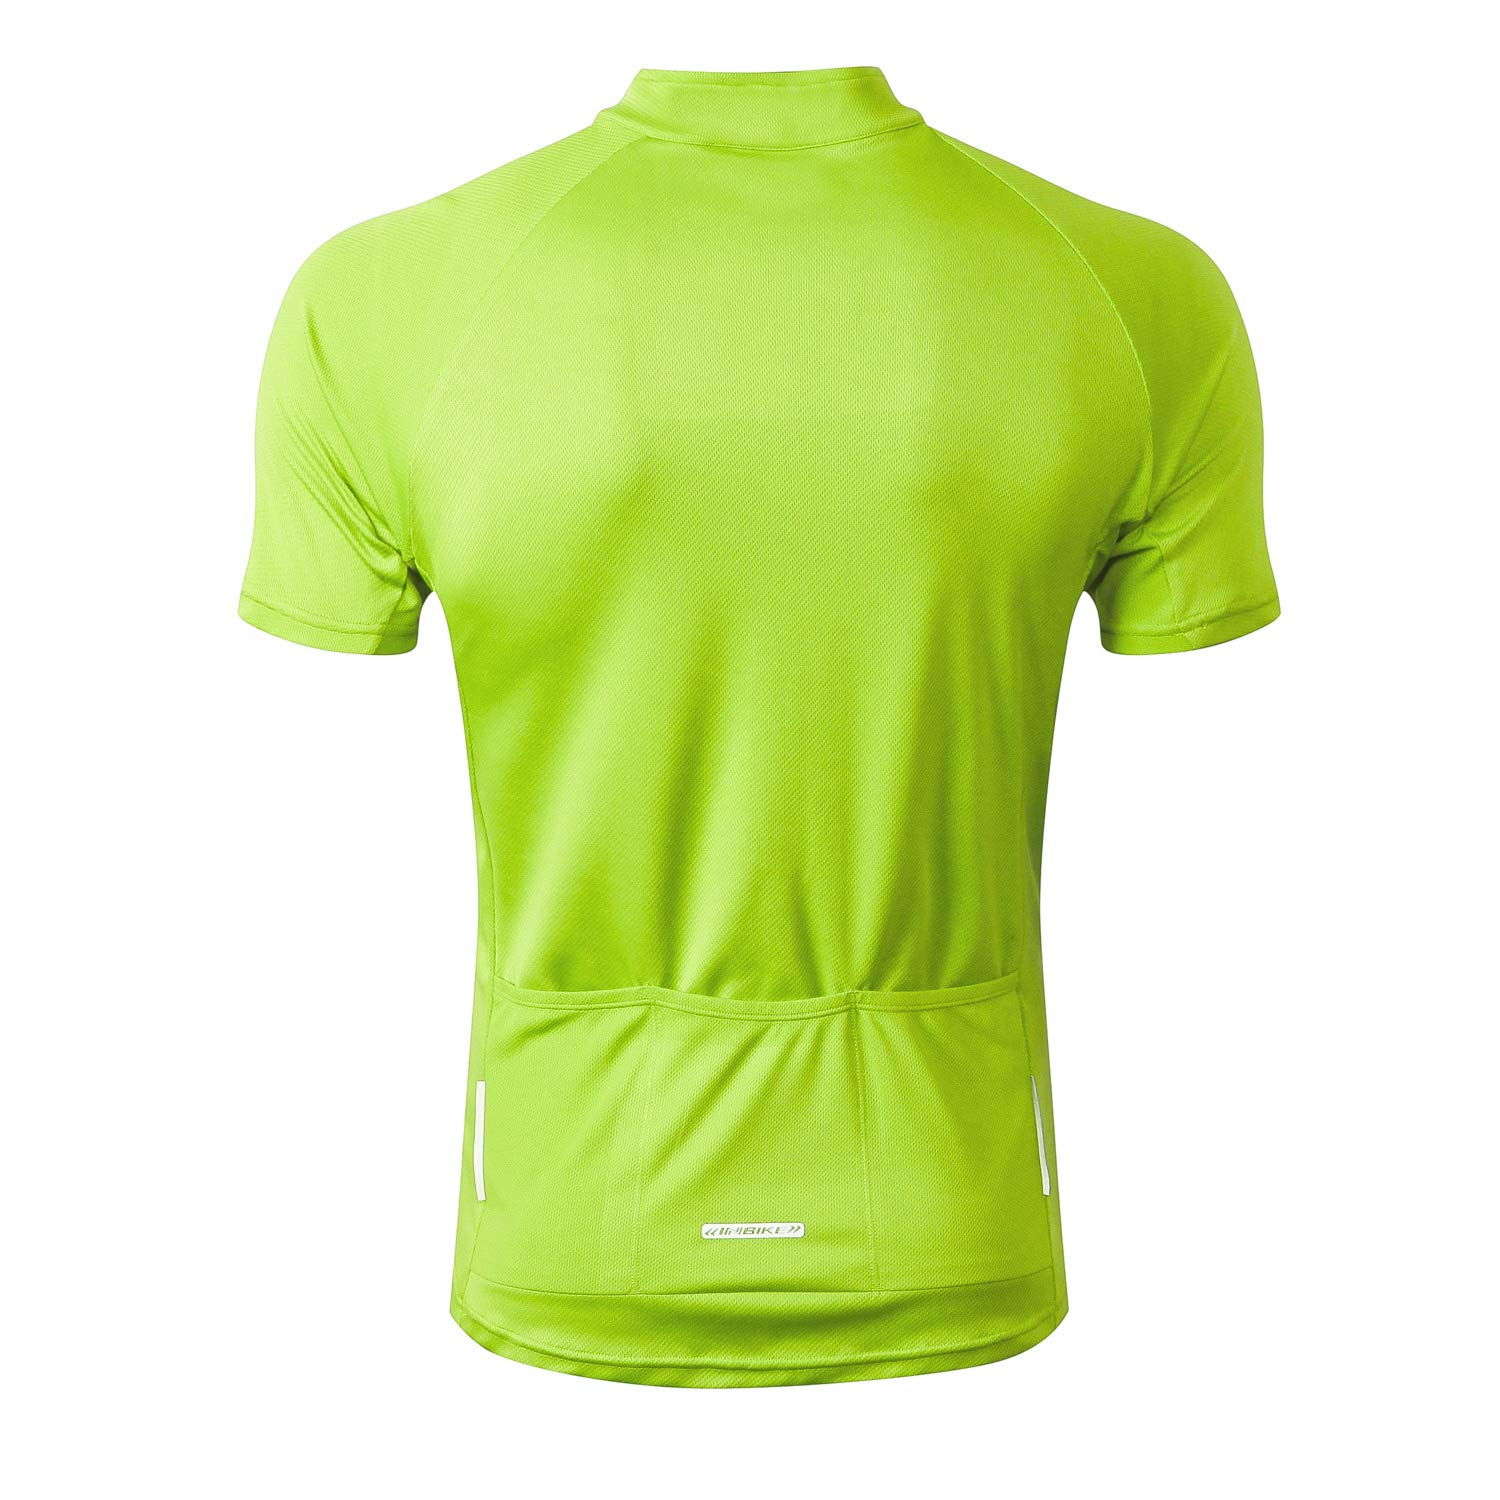 INBIKE Mens Moisture Wicking Short Sleeve Quick Dry Bike Jersey Running Tops Breathable Basic Shirts for Sports